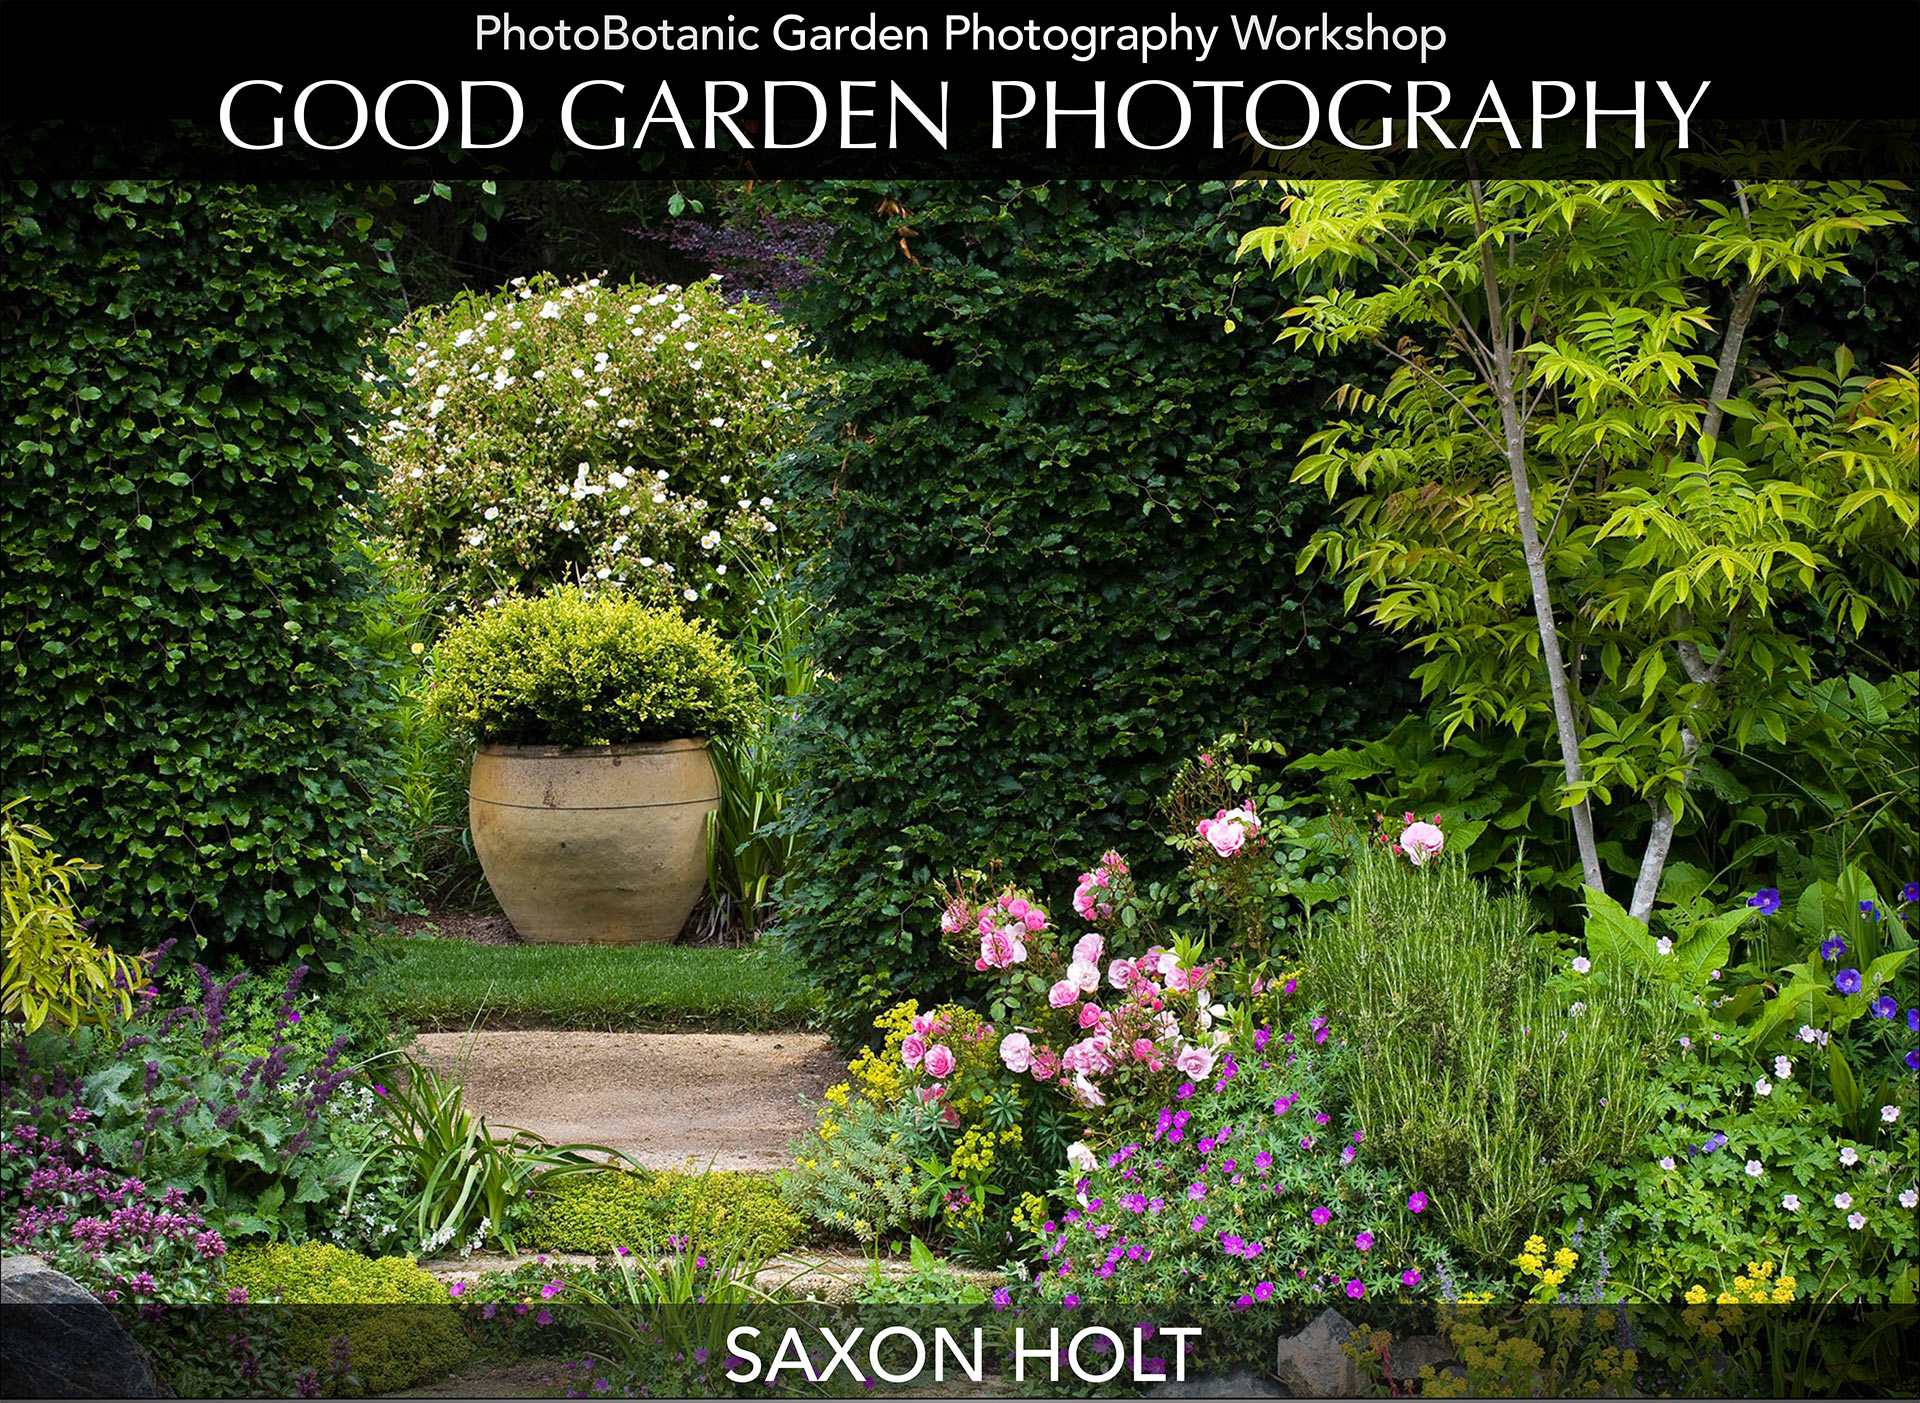 Good Garden Photography - The Book - Photobotanic